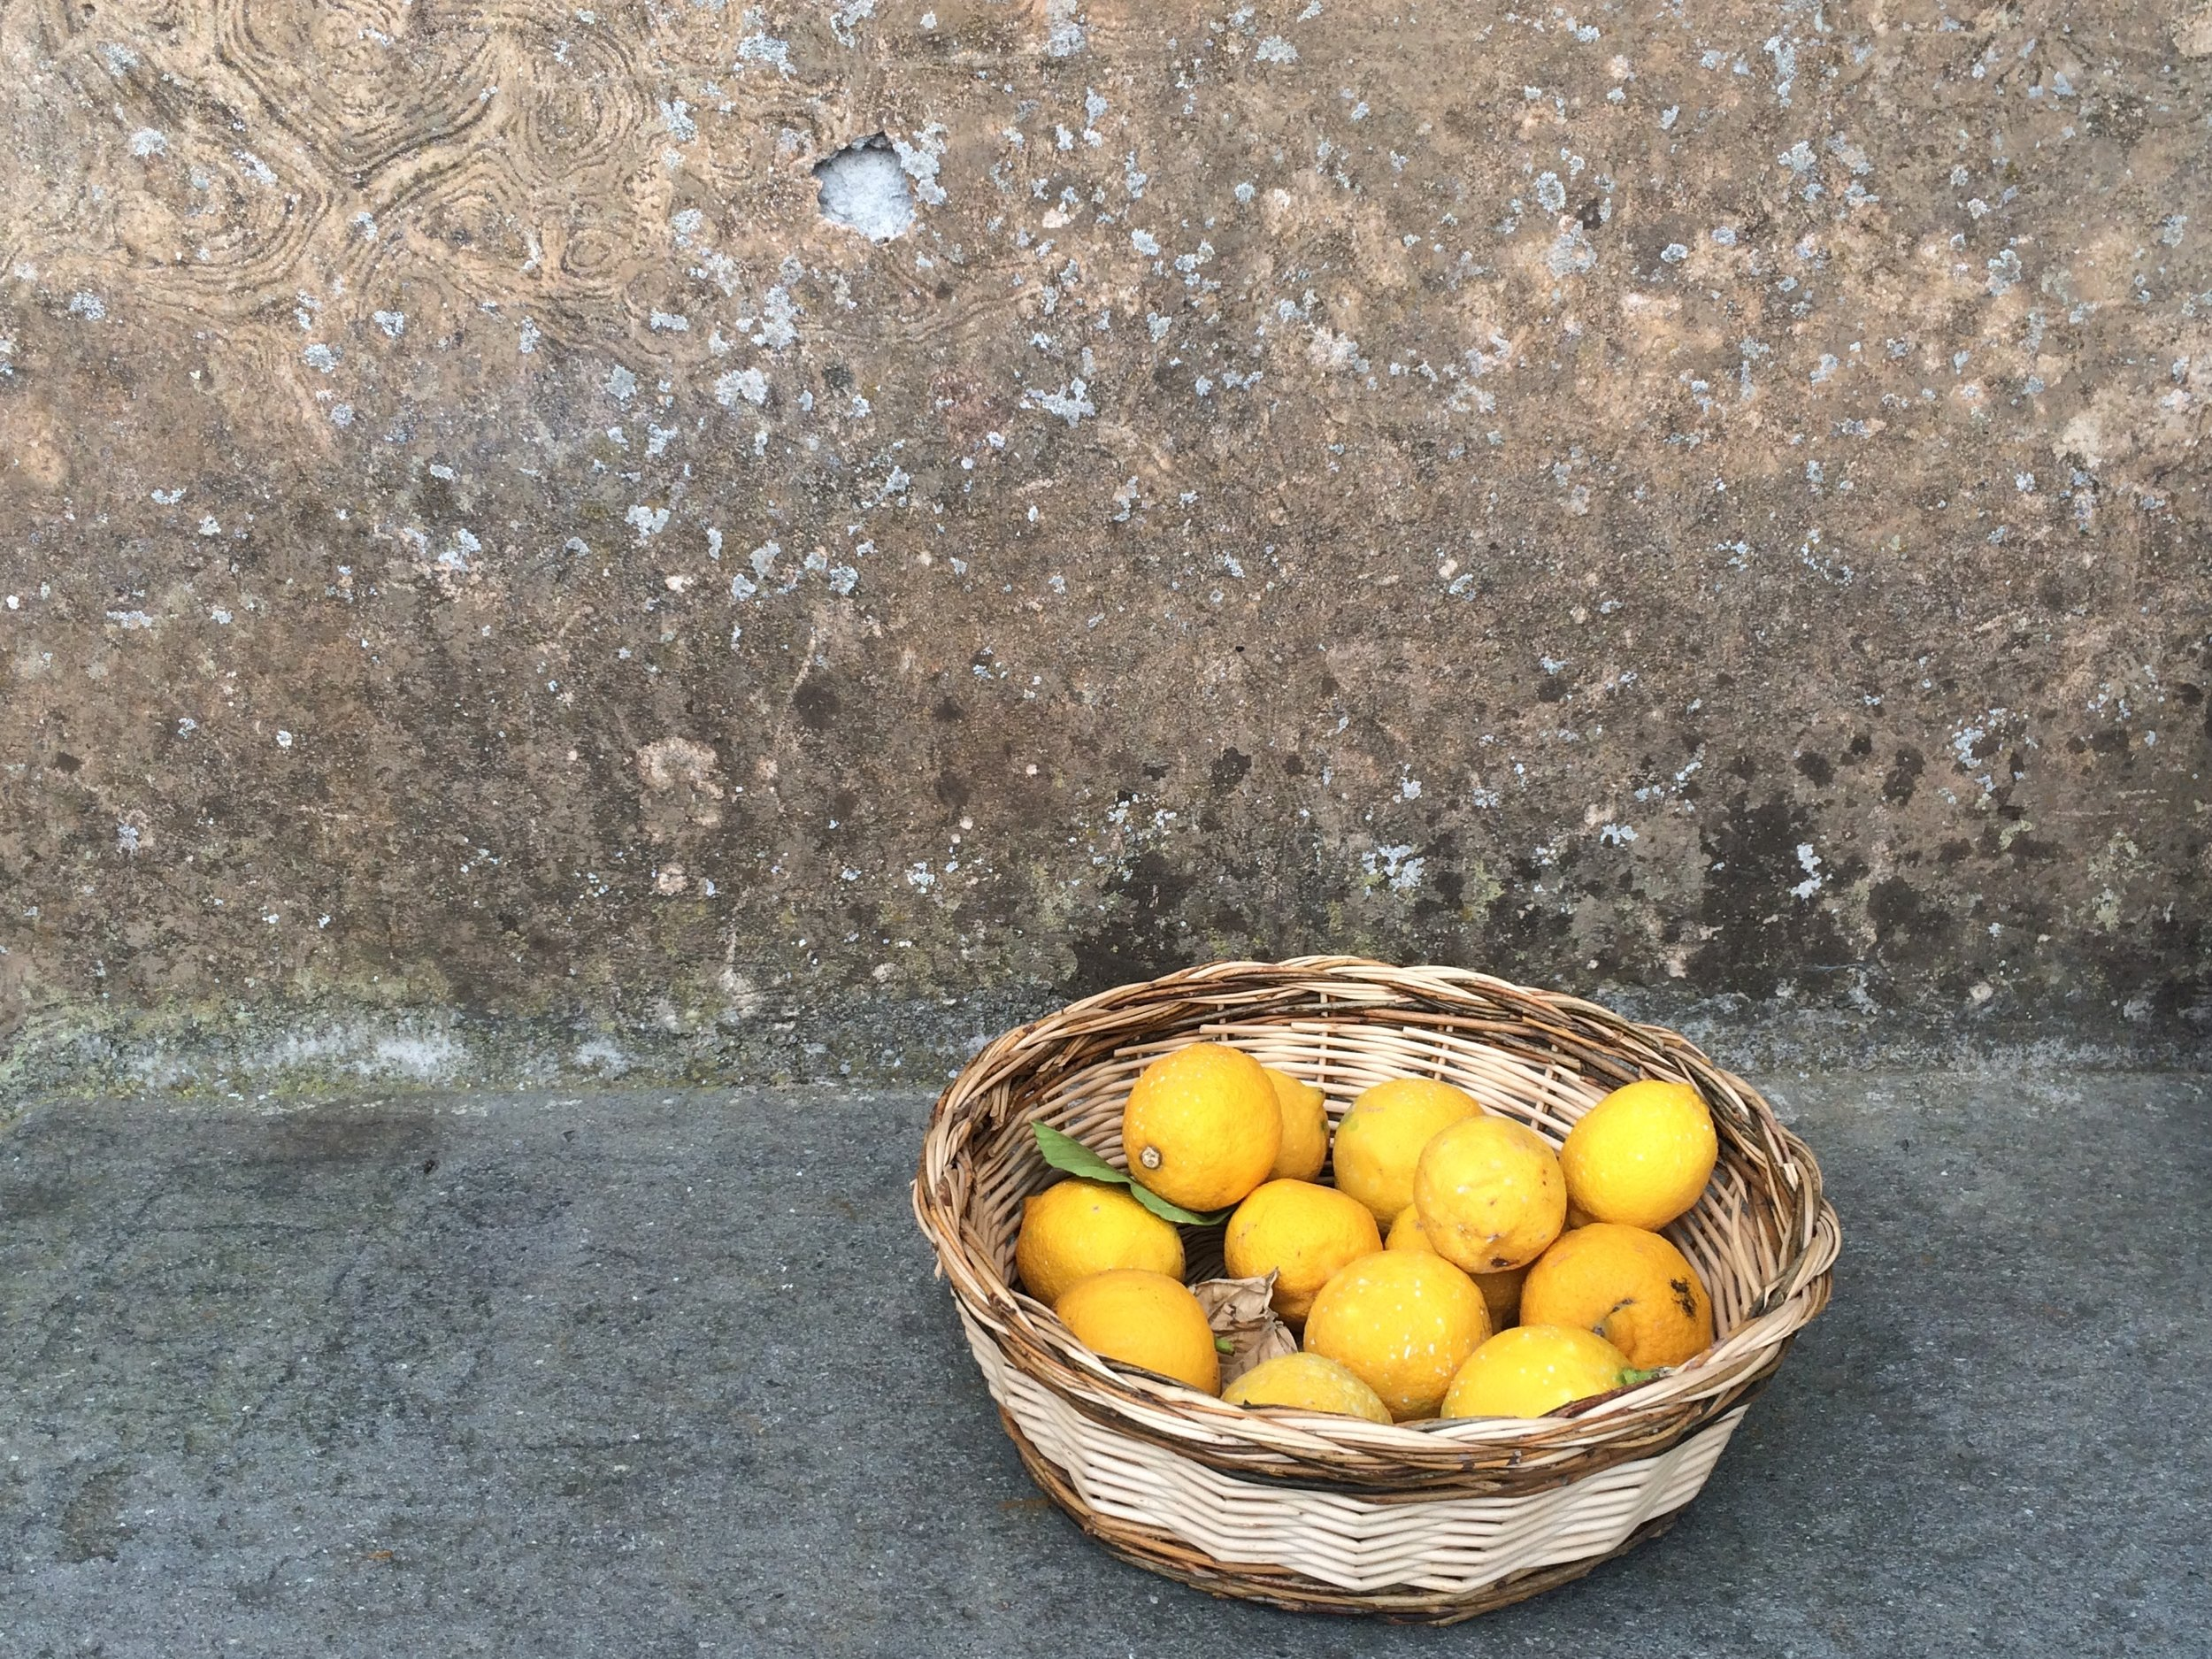 Blissful Yoga Retreat in Tuscany - Basket of lemons